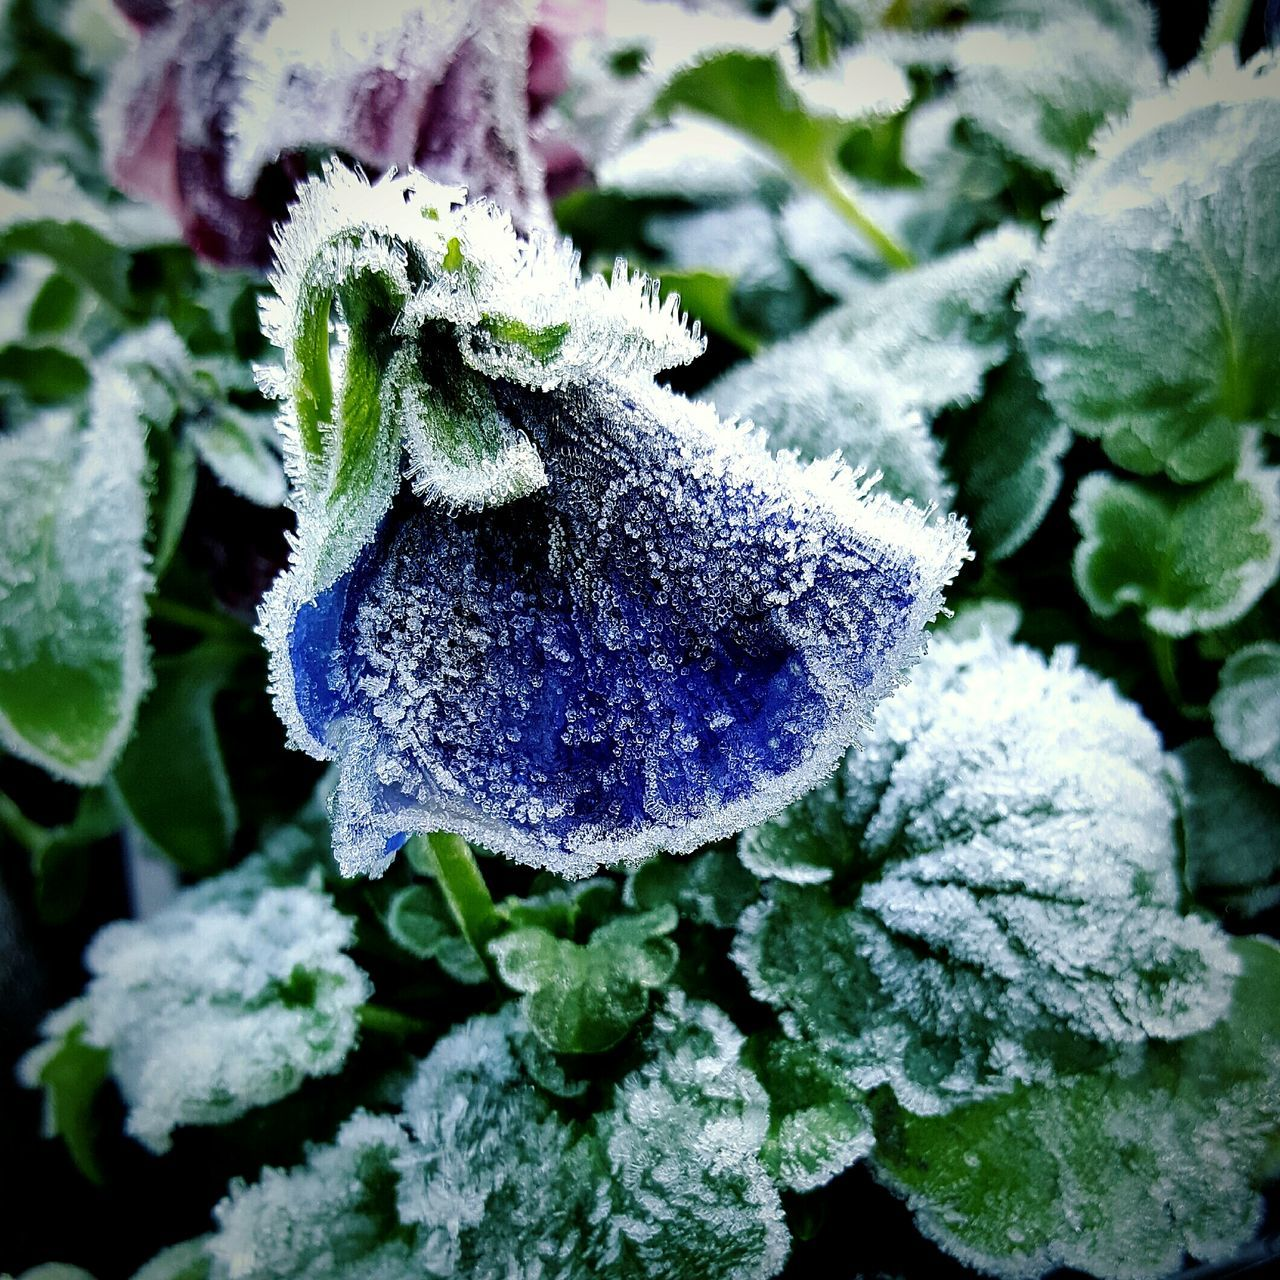 Beauty of winter Nature Growth Plant Beauty In Nature Flower Outdoors Close-up No People Cold Temperature Fragility Day Flower Head Freshness Wintertime Frosted Nature Outdoors Pansy